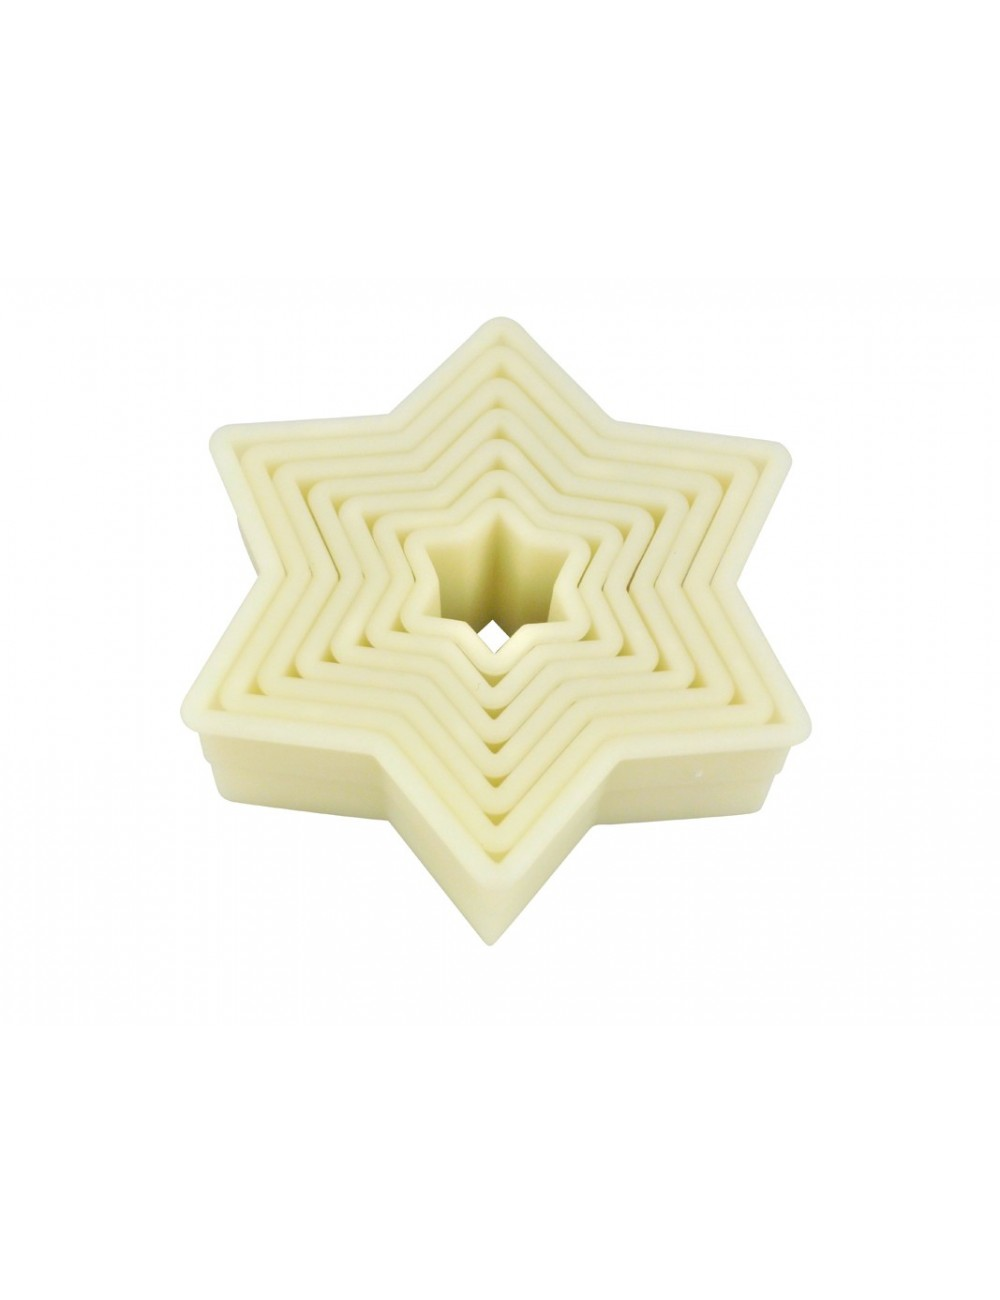 BOX OF 7 STAR CUTTERS - POLYGLASS